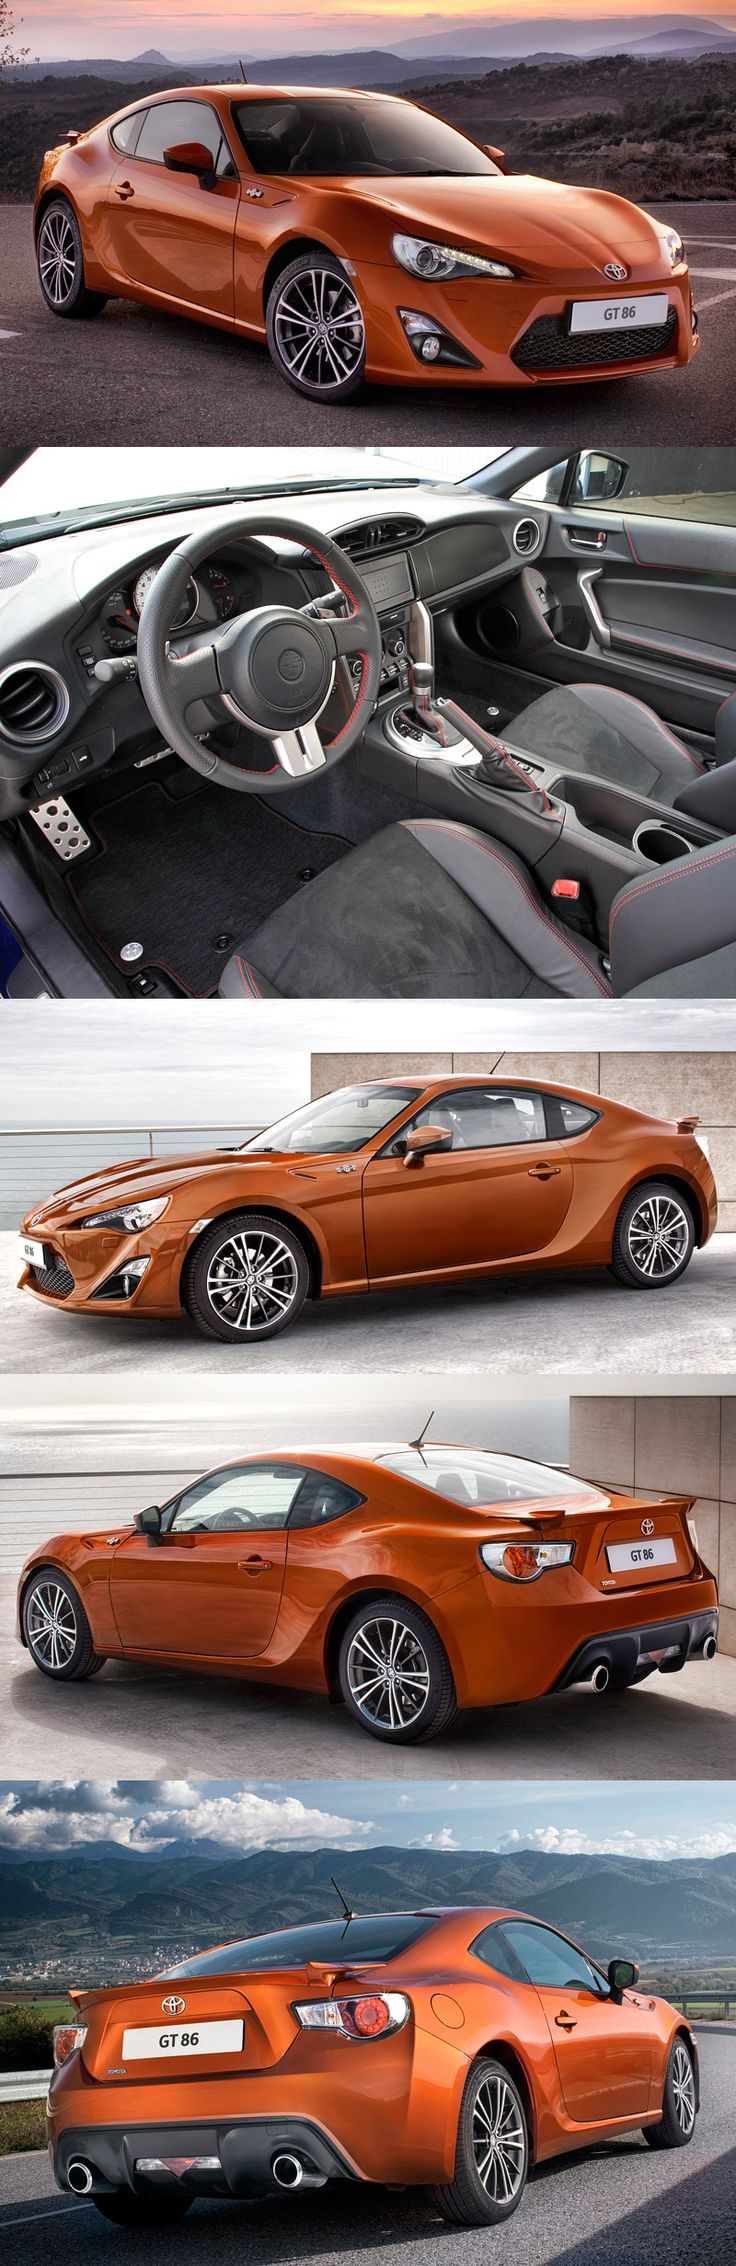 This light, uncomplicated #coupe promises so much. Can the #Toyota #GT86 deliver?   http://www.toyotaenginesandgearboxes.co.uk/engines/